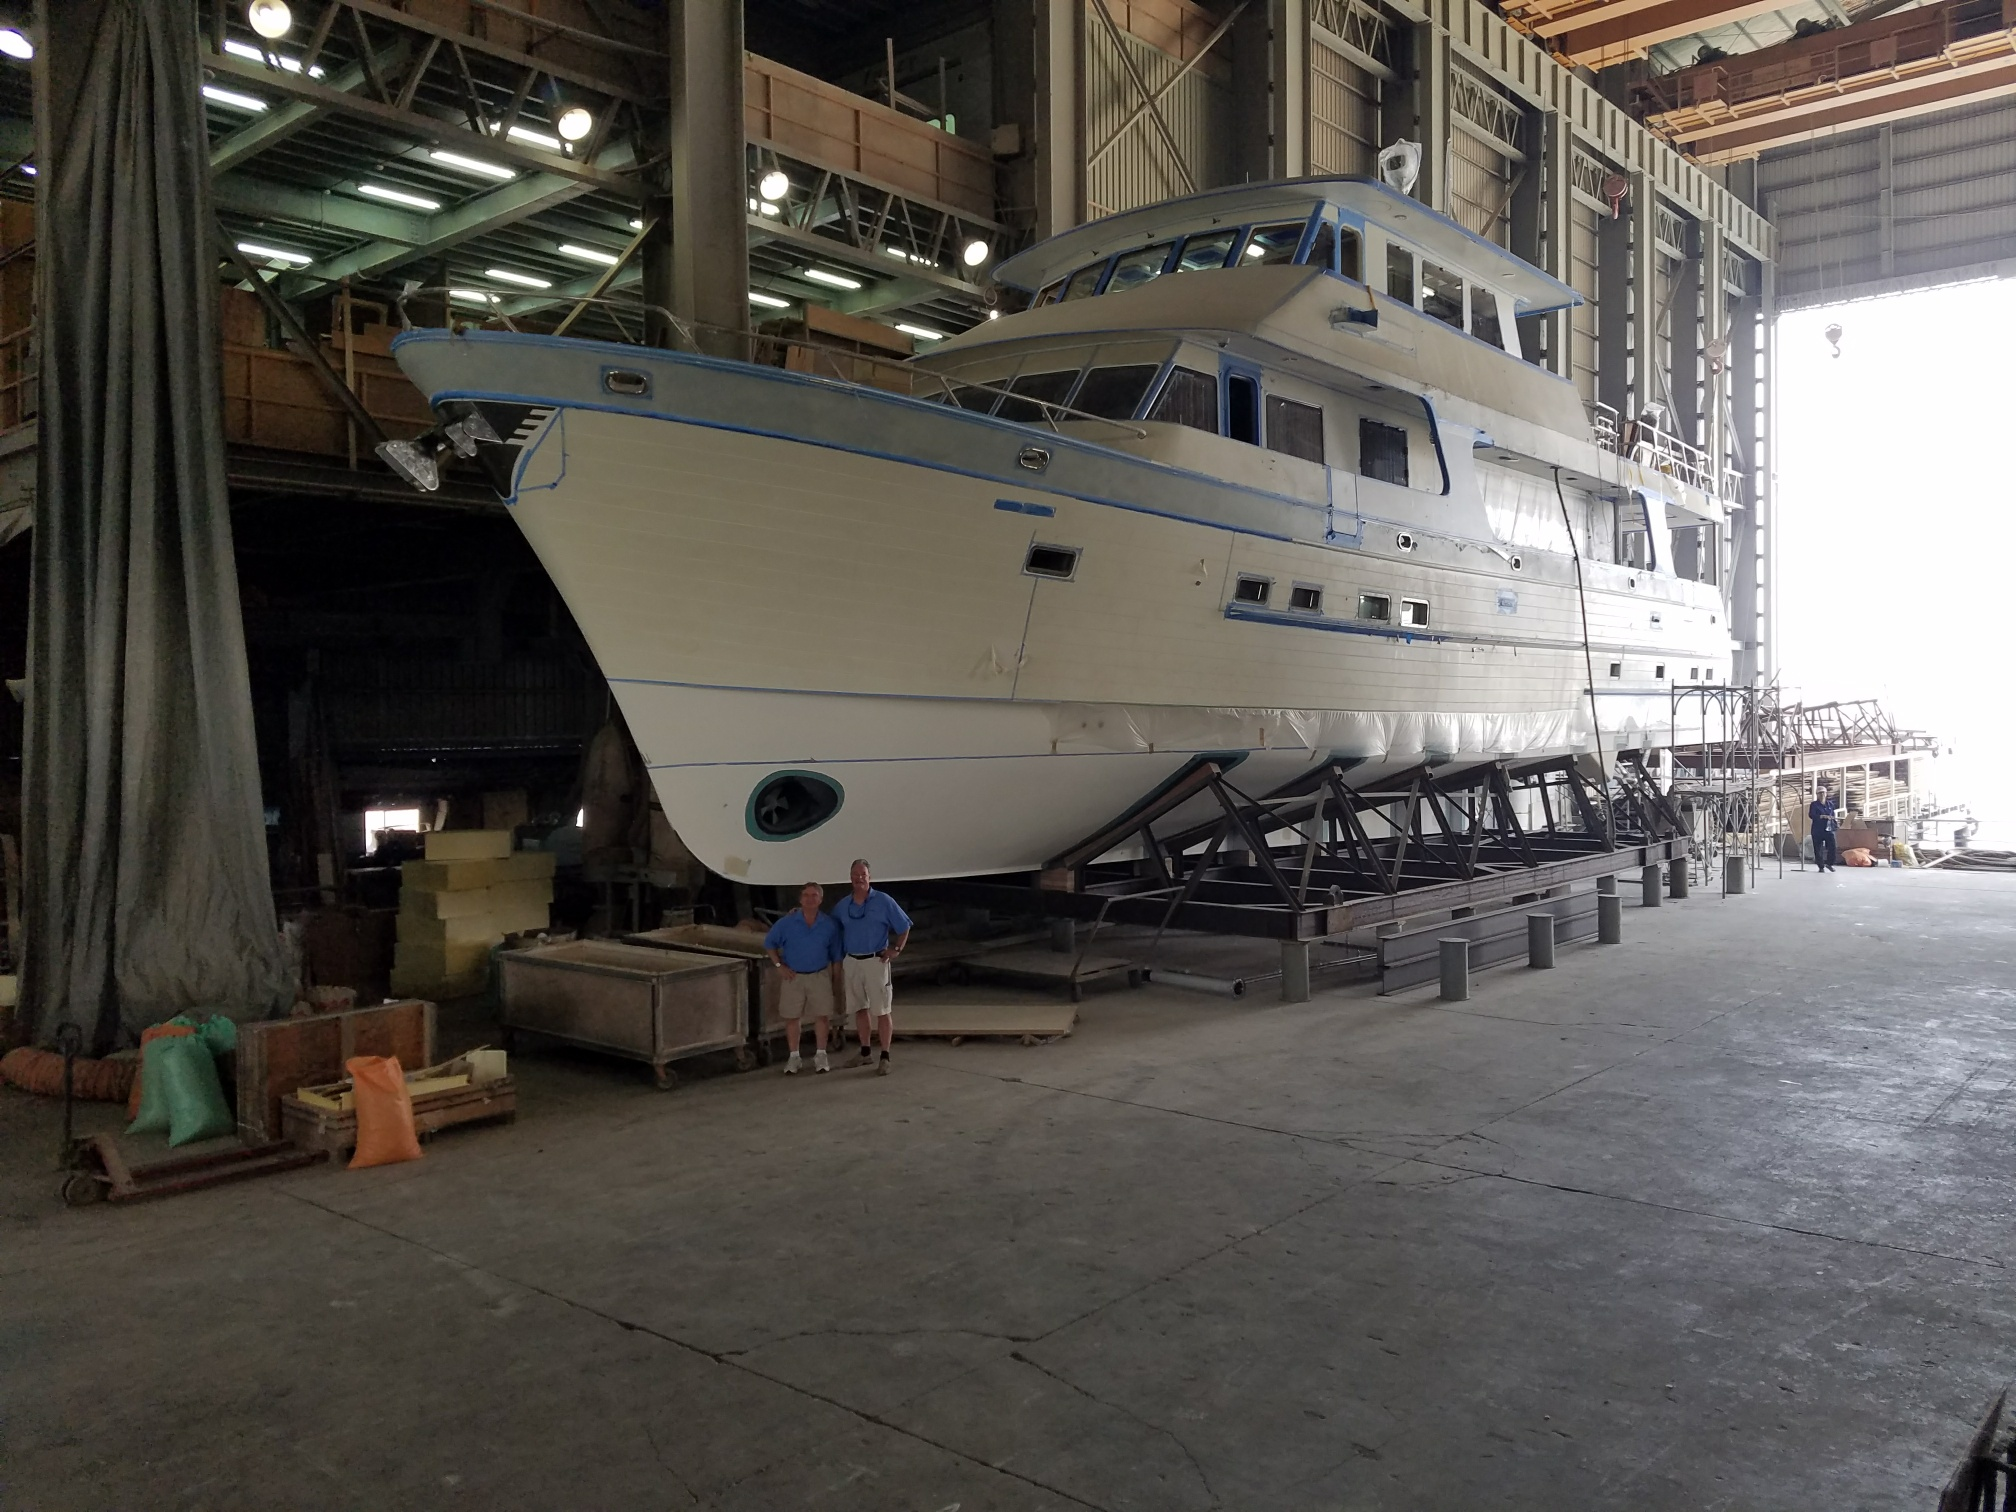 Photos of A New 860 Deluxbridge Motoryacht In Build